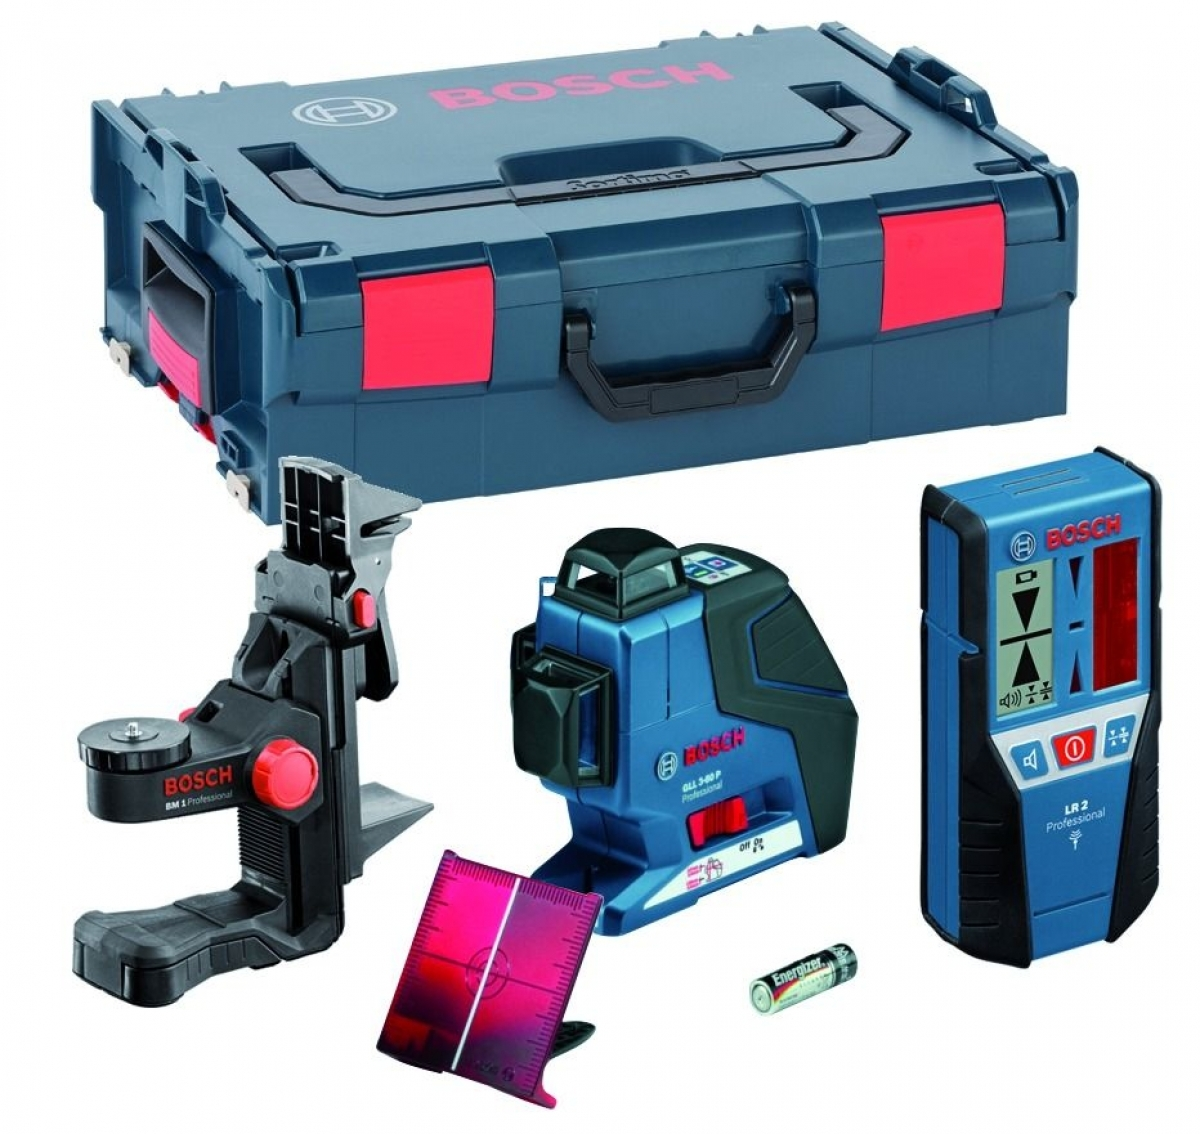 bosch gll 3 80 p multi line laser leveler my power tools. Black Bedroom Furniture Sets. Home Design Ideas